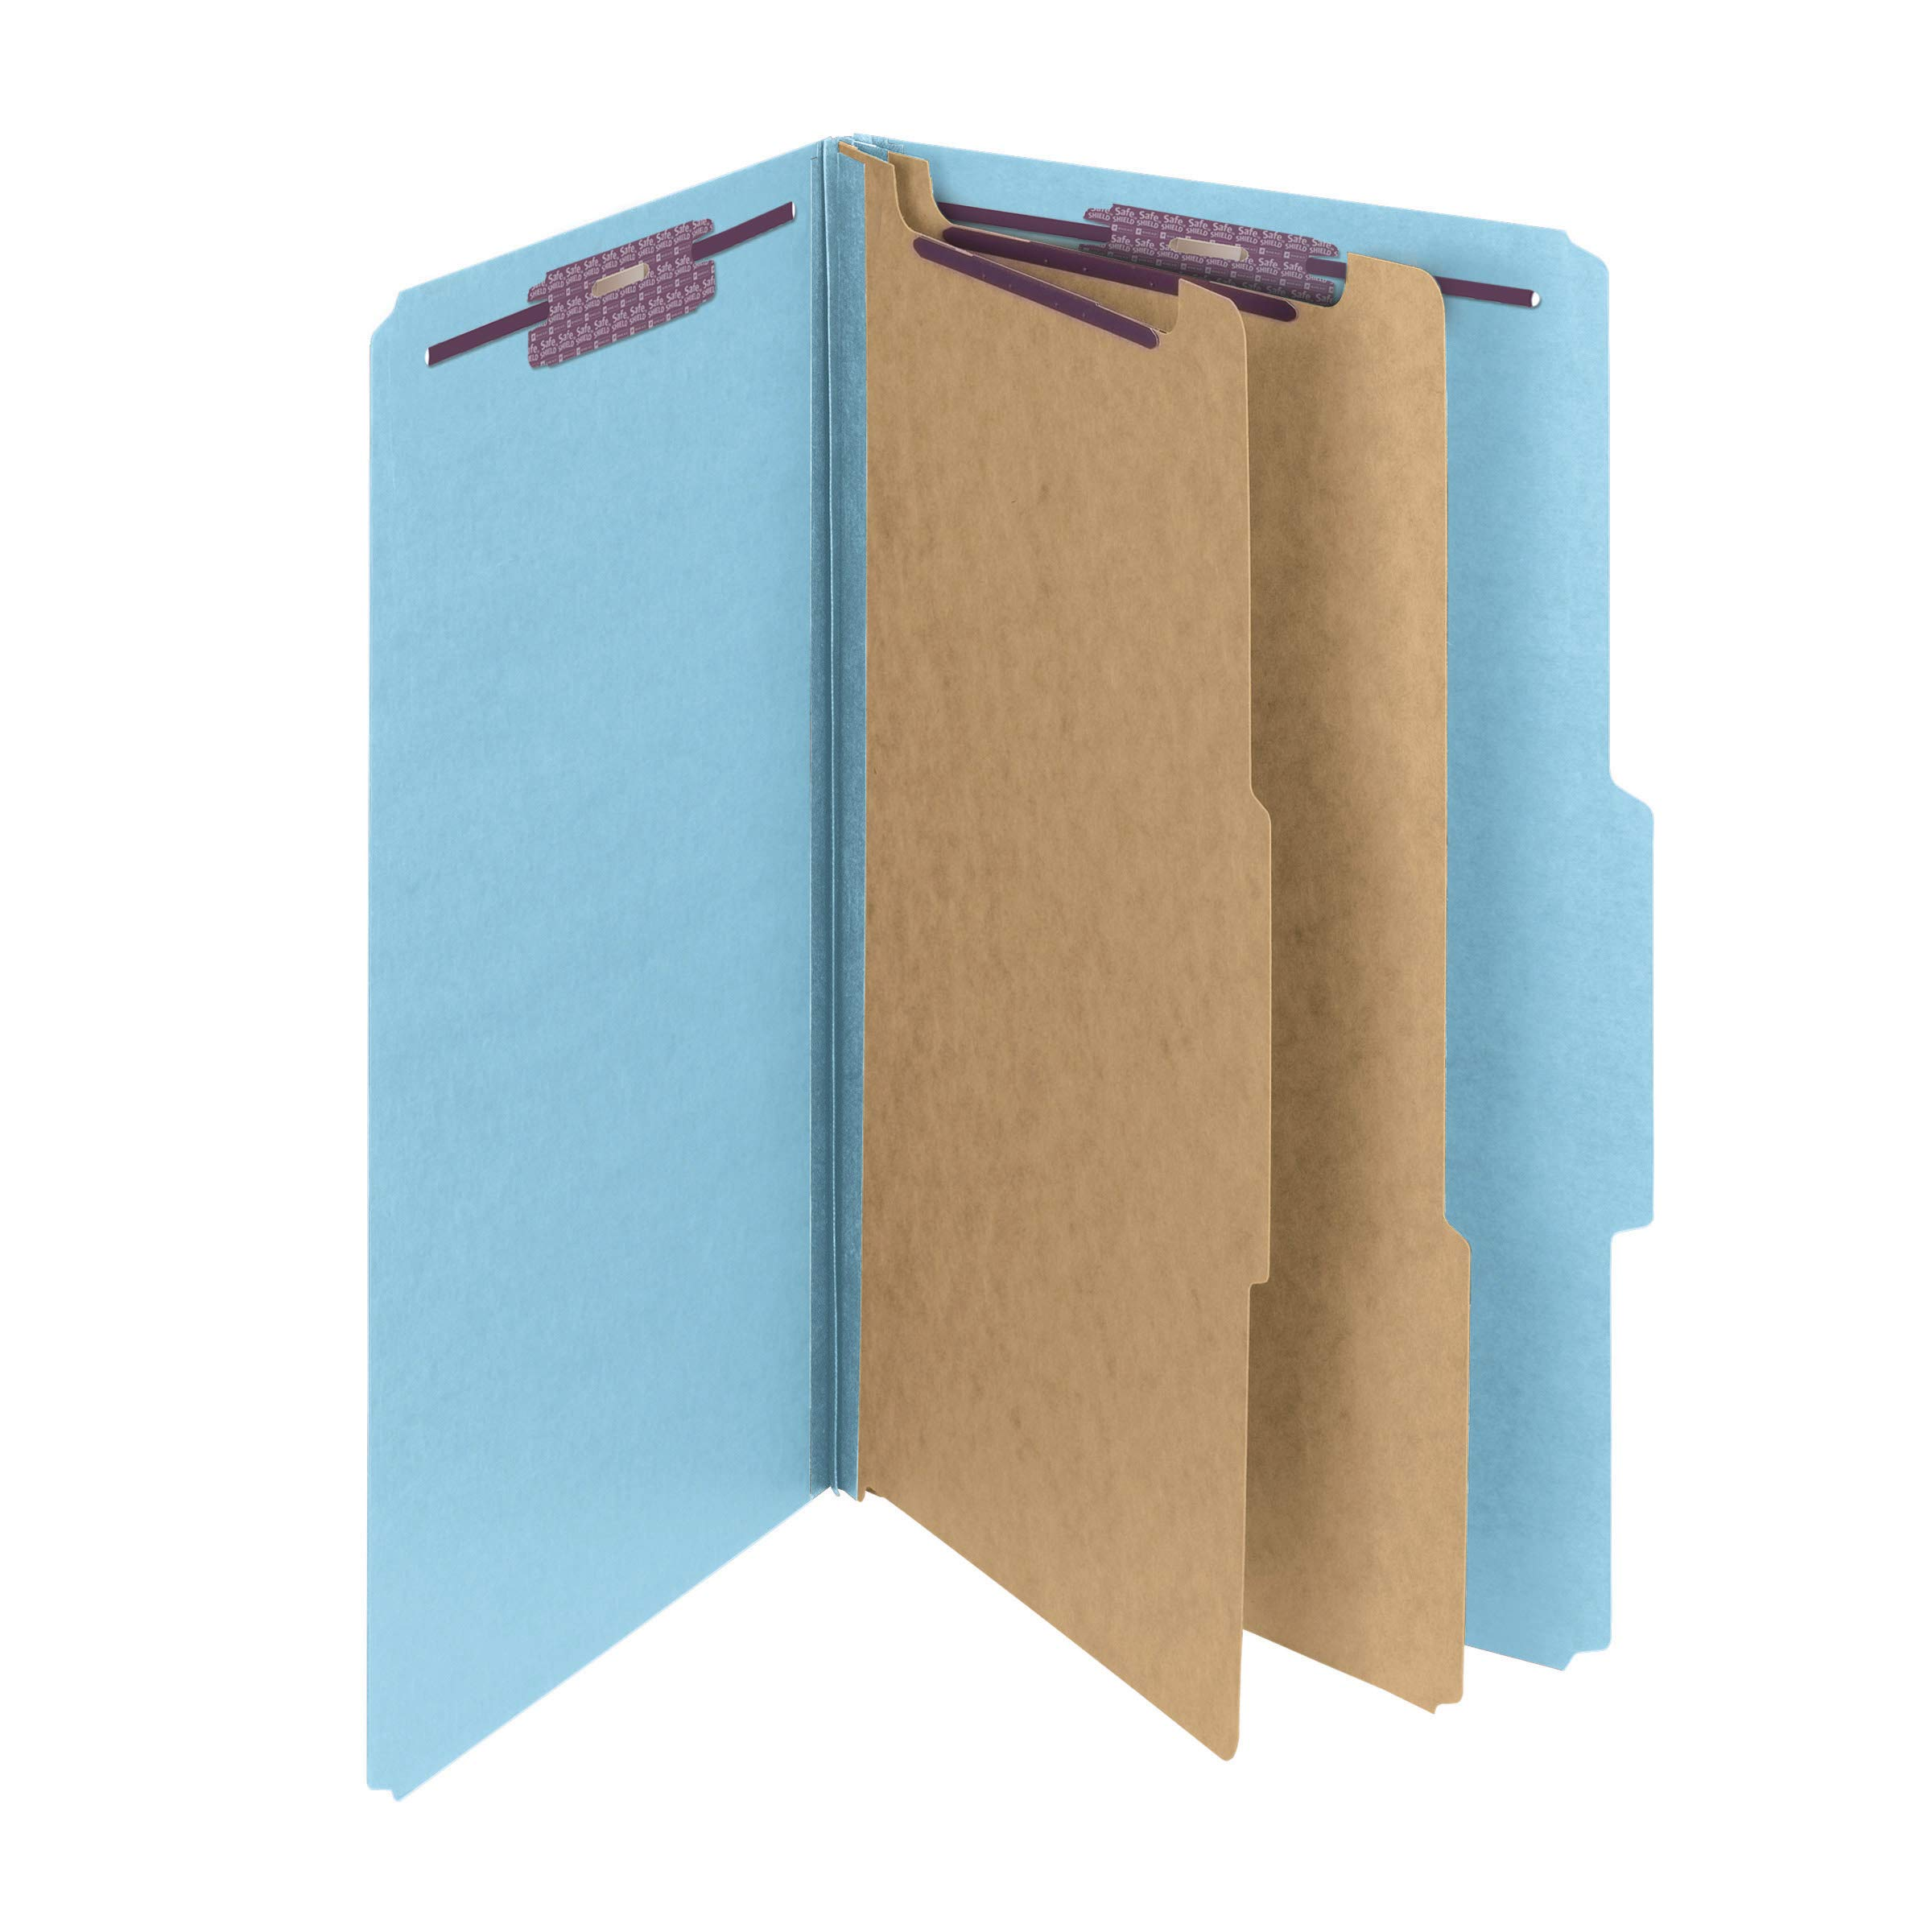 Smead Pressboard Classification File Folder with SafeSHIELD Fasteners, 2 Dividers, 2'' Expansion, Legal Size, Blue, 10 per Box (19030)